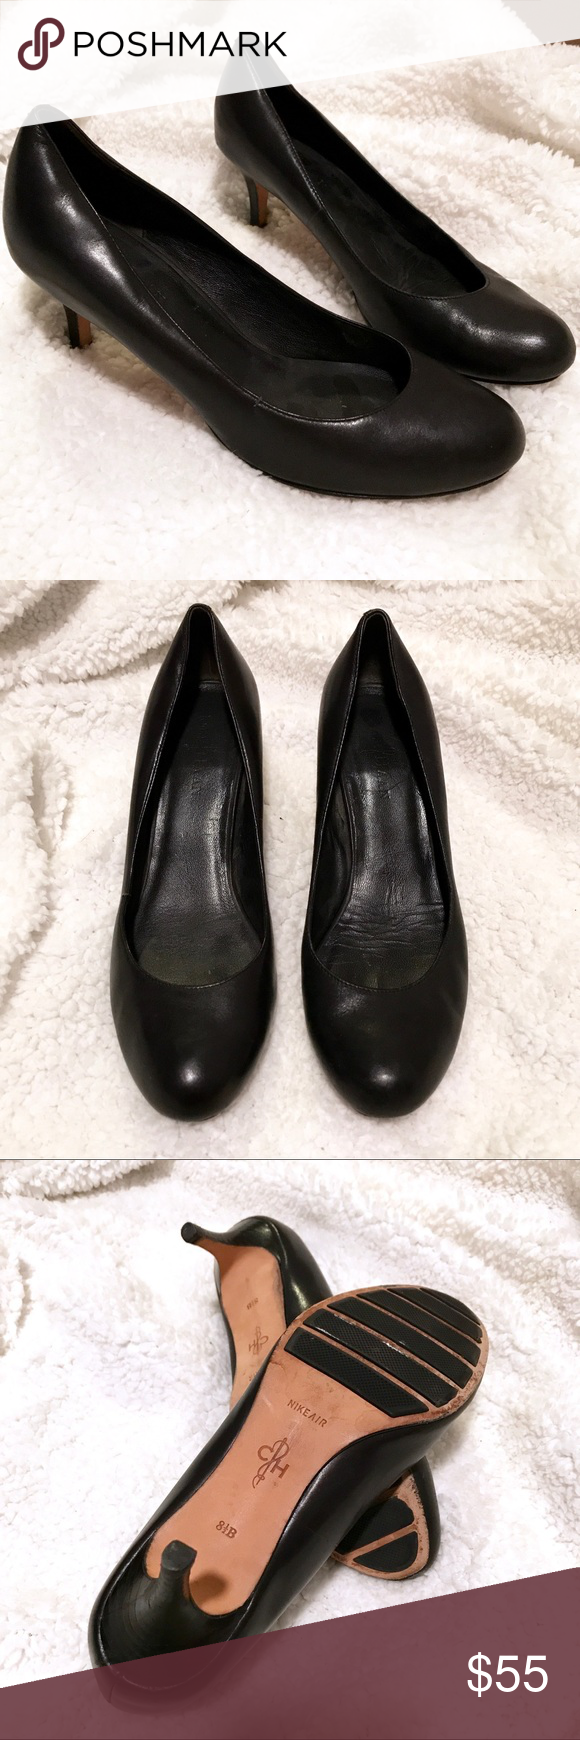 promo code cba32 dfe44 Cole Haan Nike Air black heels SIZE 8.5 Classic matte black leather pumps  from the Nike